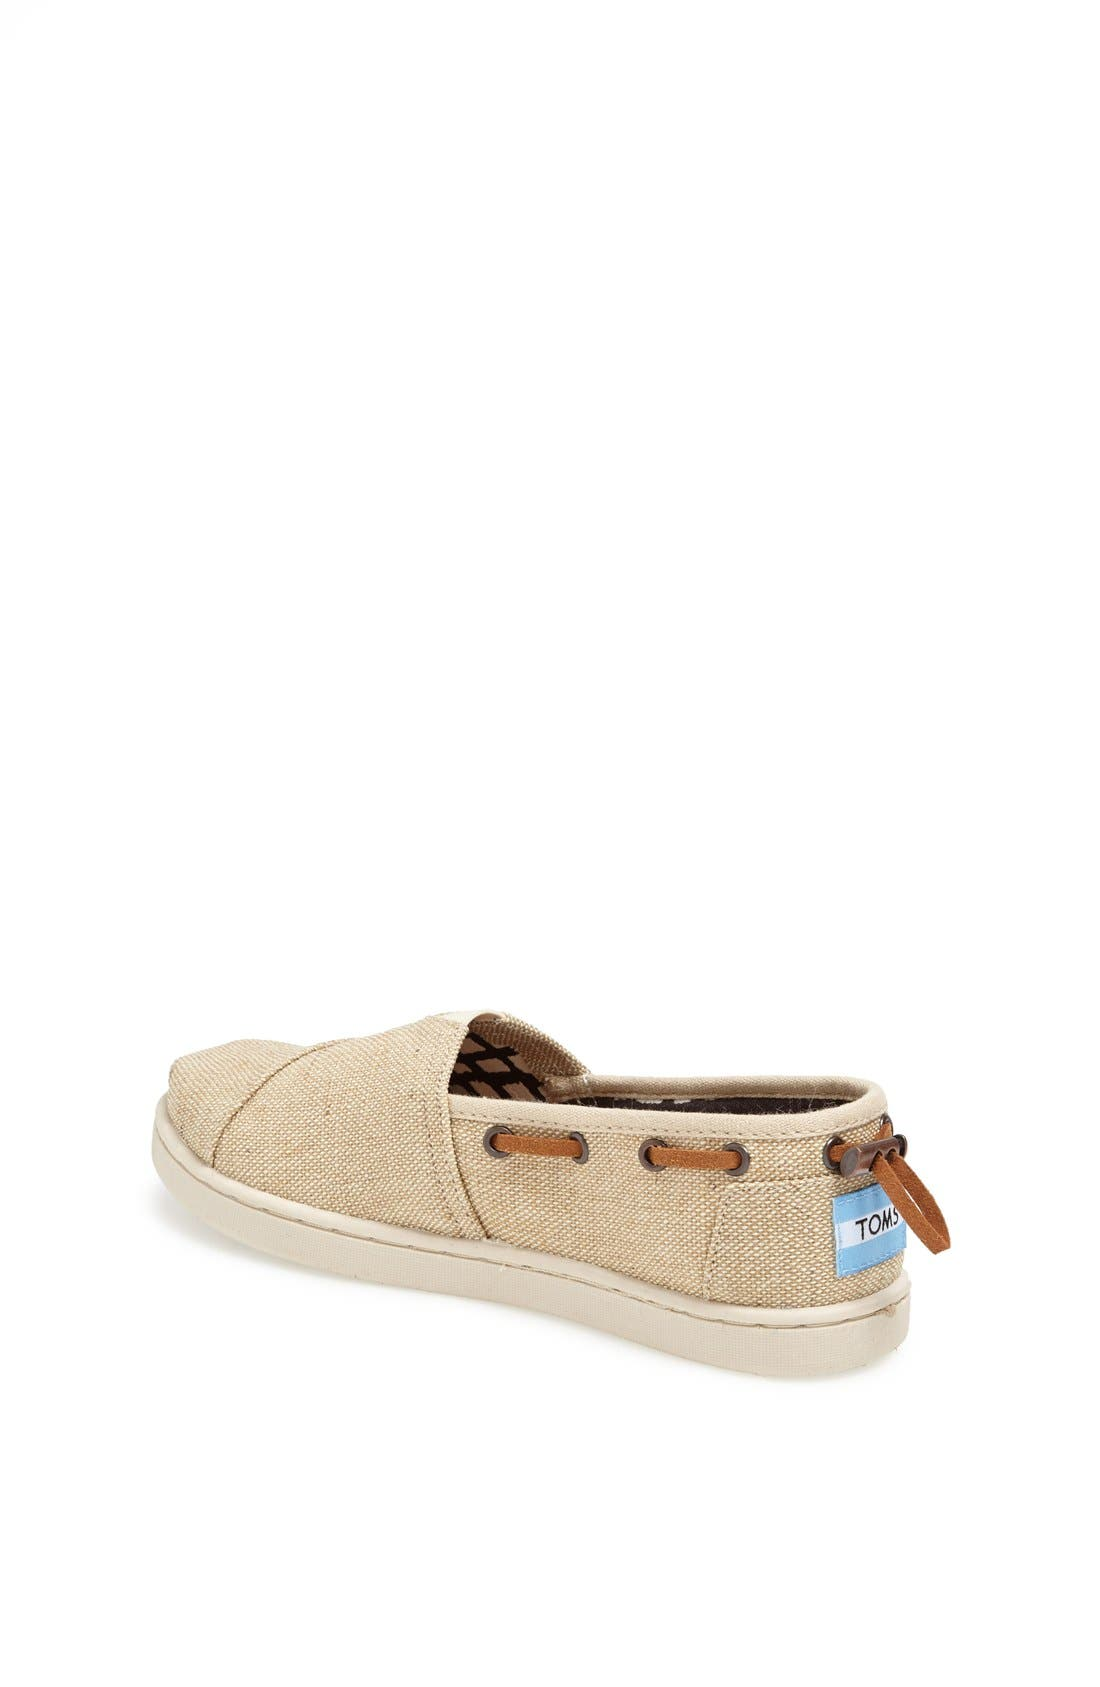 Alternate Image 2  - TOMS 'Bimini - Youth' Slip-On (Toddler, Little Kid & Big Kid)